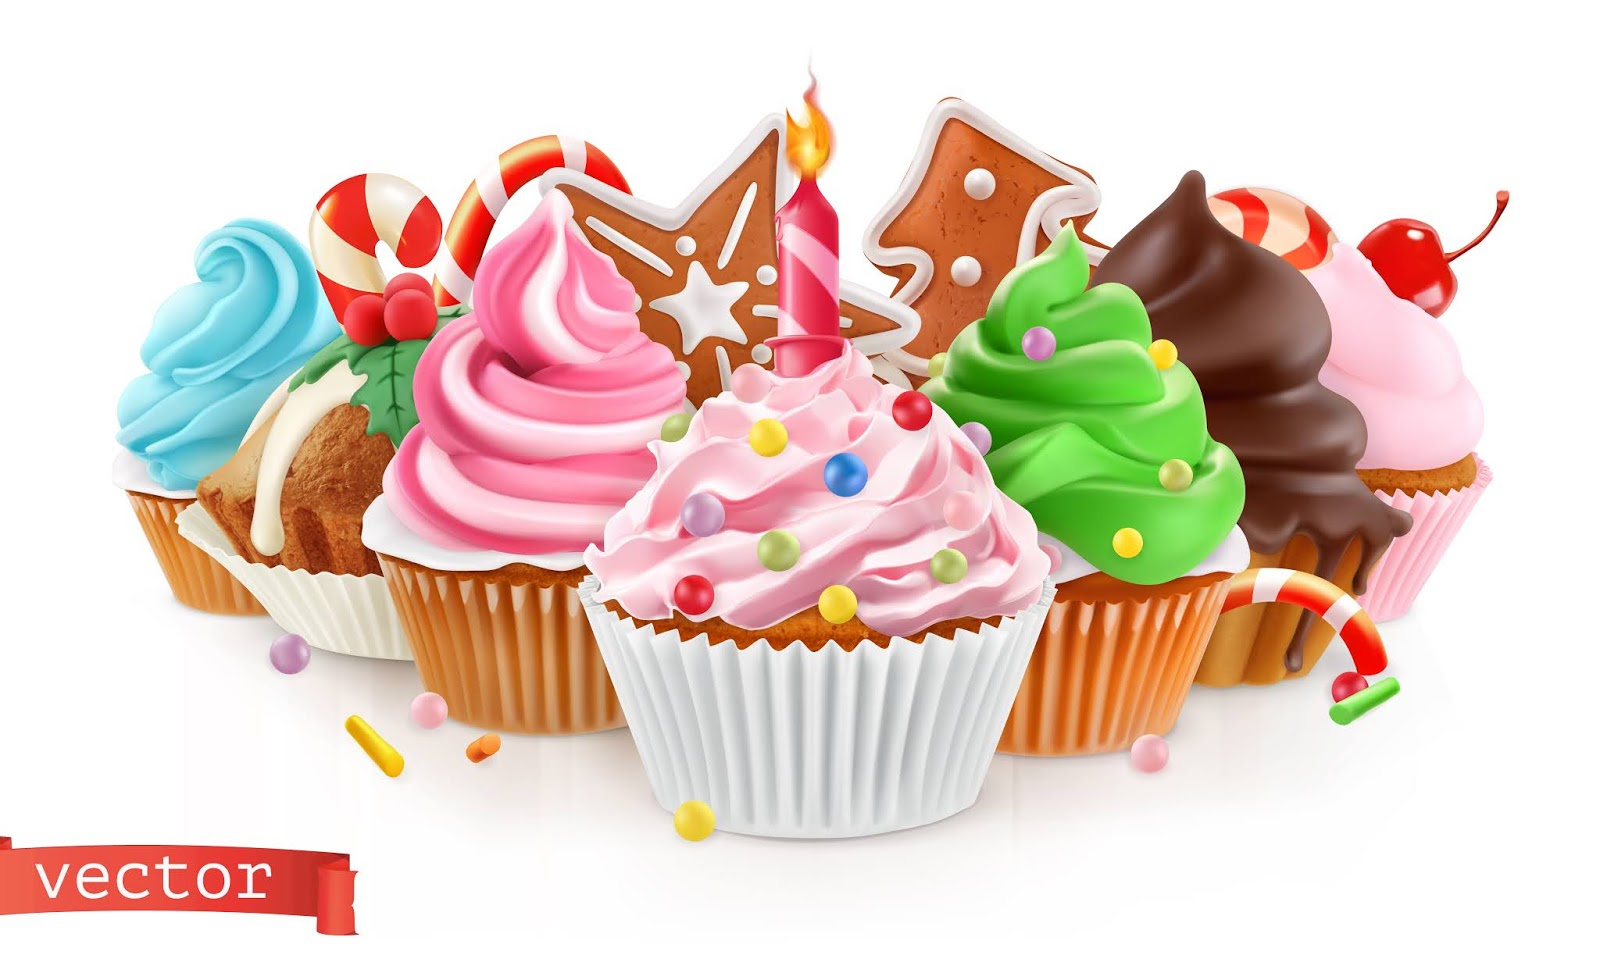 Holiday Sweet Dessert Cake Cupcake Illustration Free Download Vector CDR, AI, EPS and PNG Formats